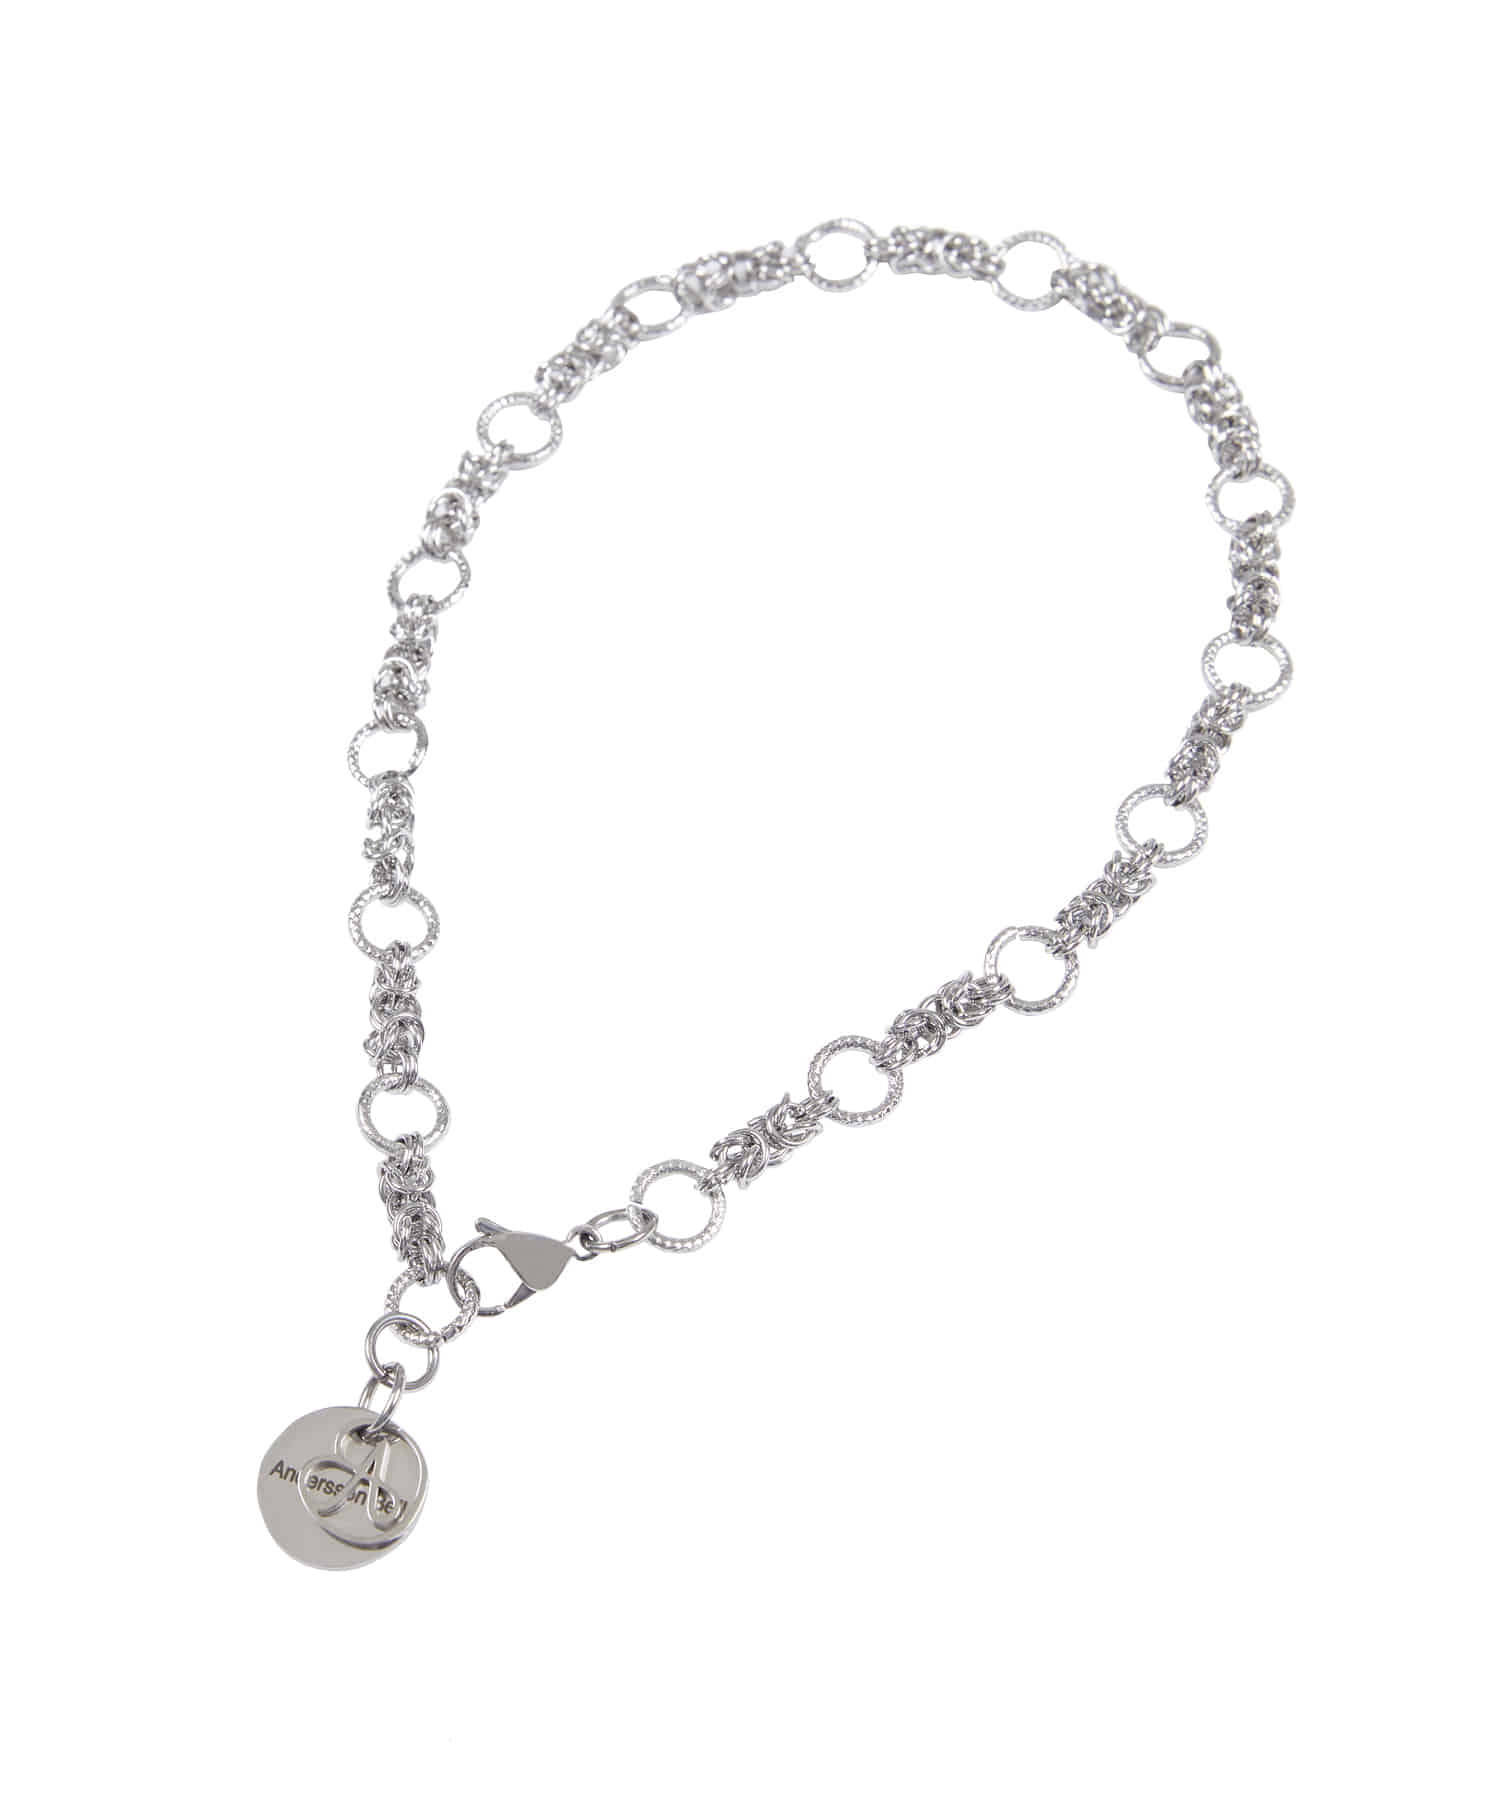 Anderssonbell앤더슨벨 UNISEX GOTHIC CHAIN NECKLACE aaa255u(SILVER)